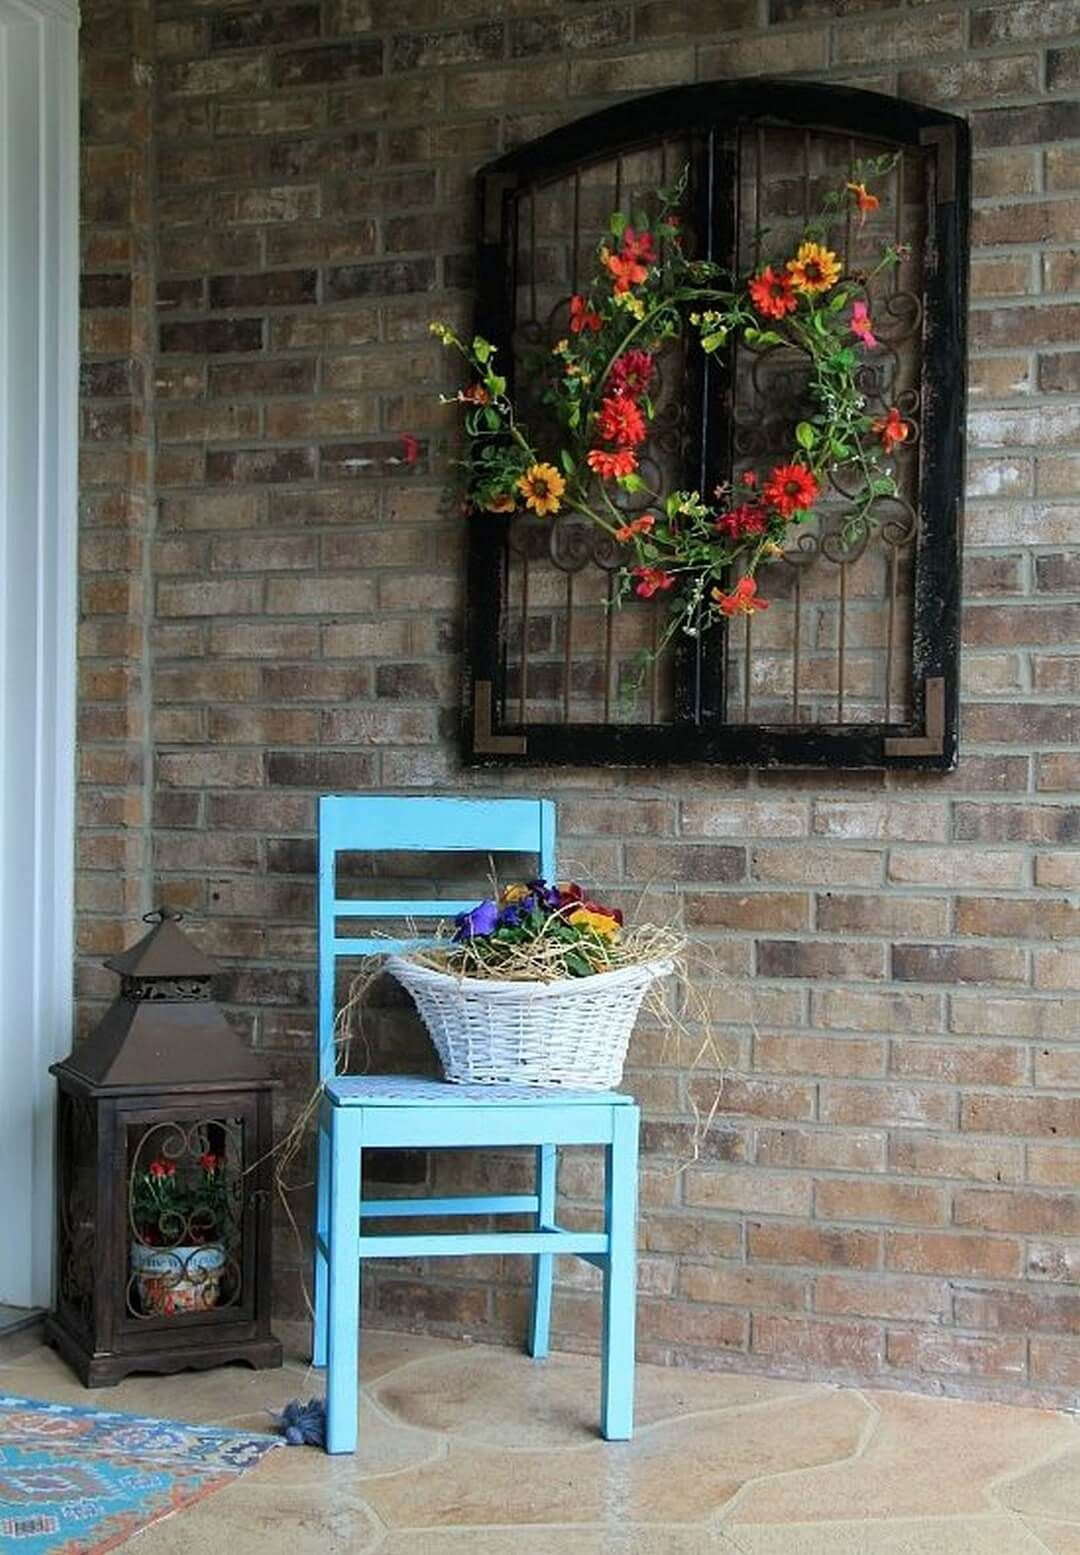 40 Rustic Vintage Porch Decor Ideas To Bring Warmth To Your Home S